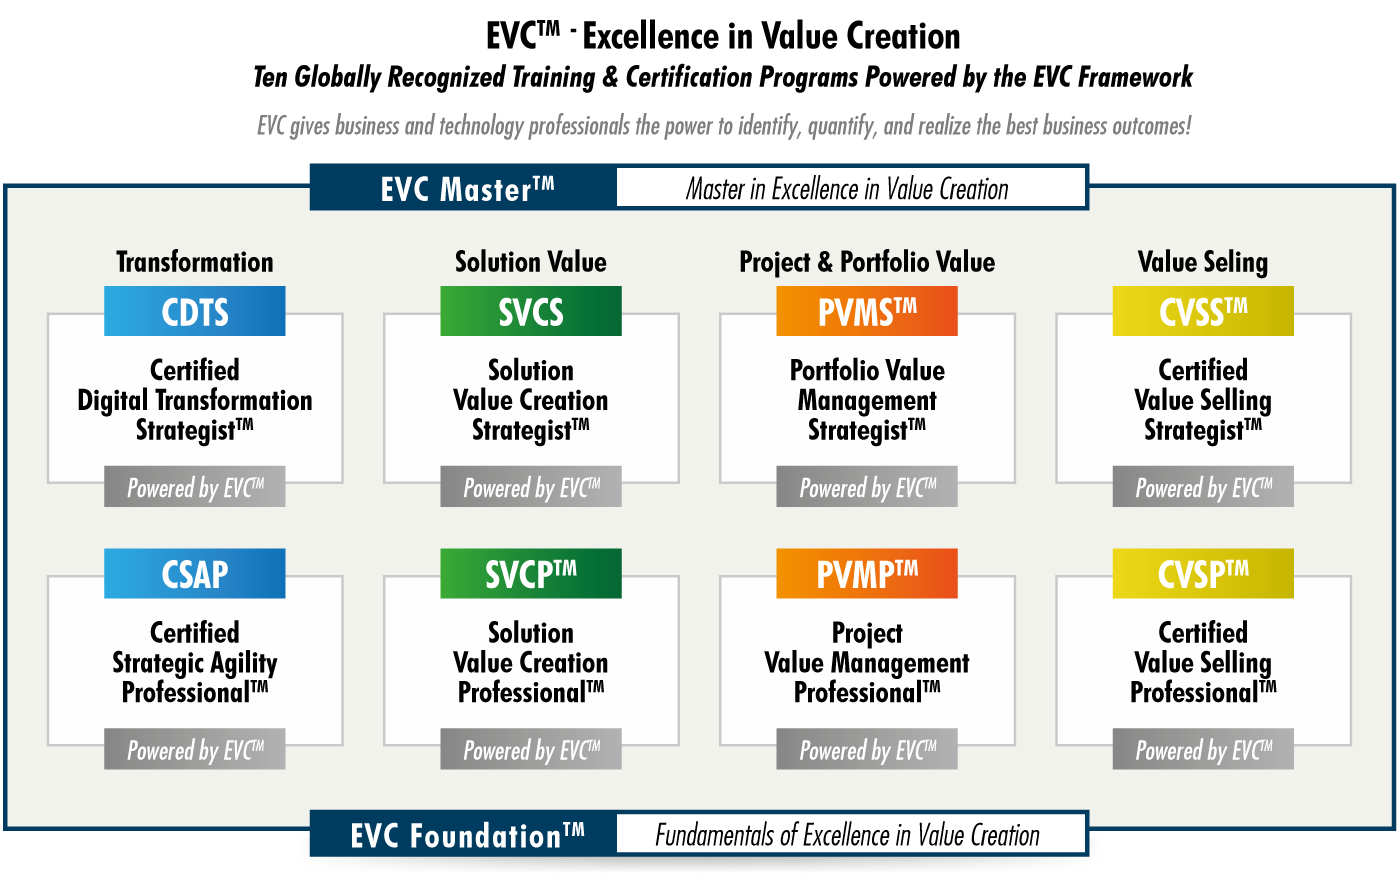 EVC training and certification programs